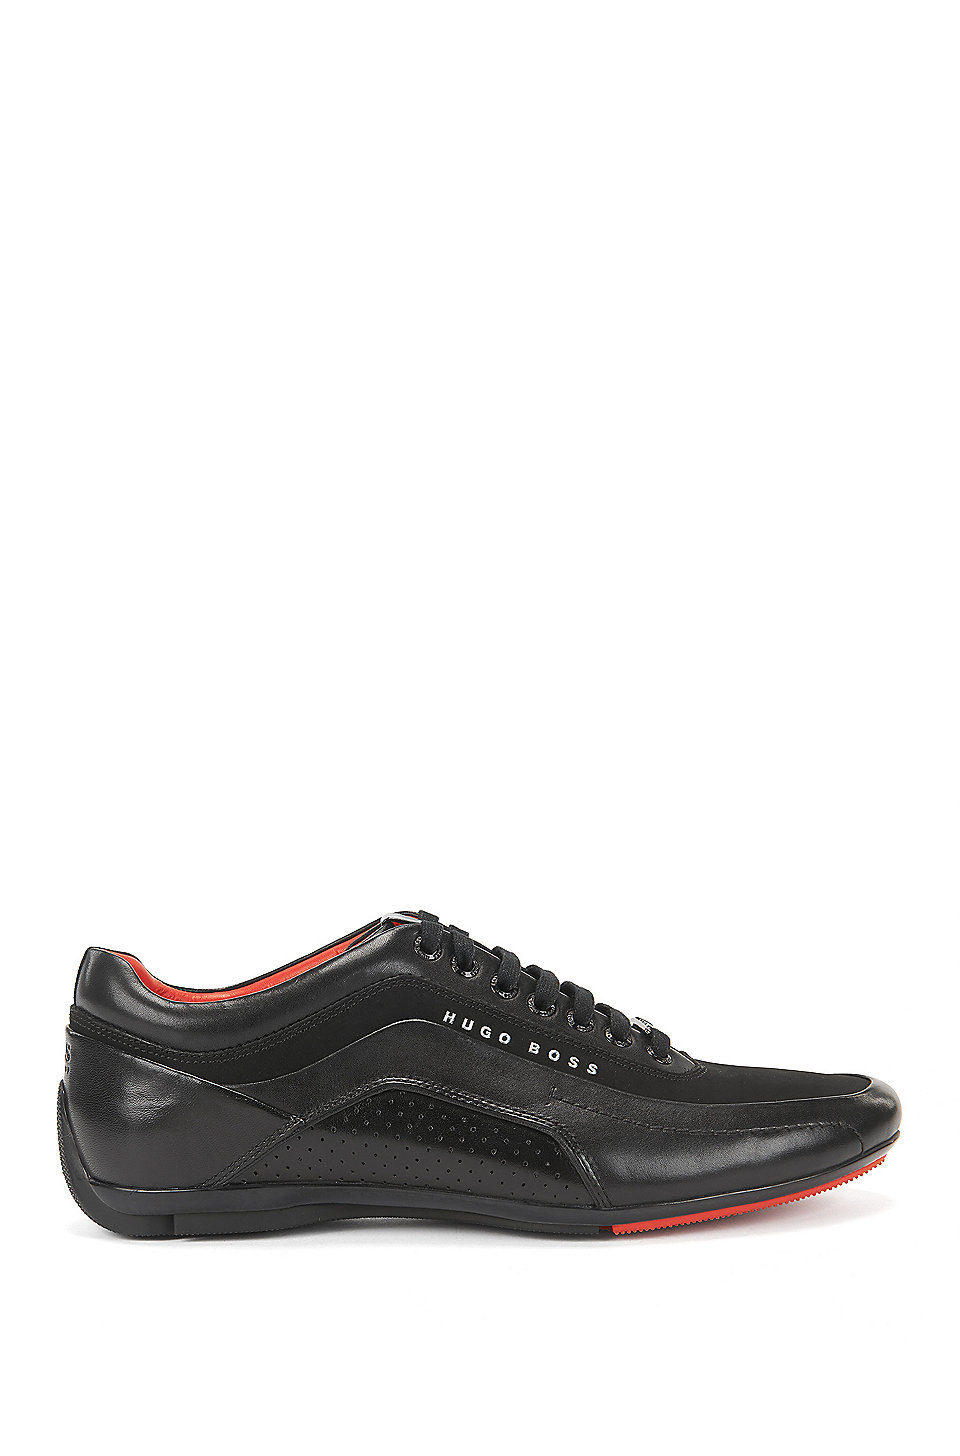 BOSS Hugo Boss Limited-edition 100% vegan sneakers in Piñatex 12 Black Sale Big Discount Pay With Paypal Cheap Price Clearance Great Deals NPK10VxDh9